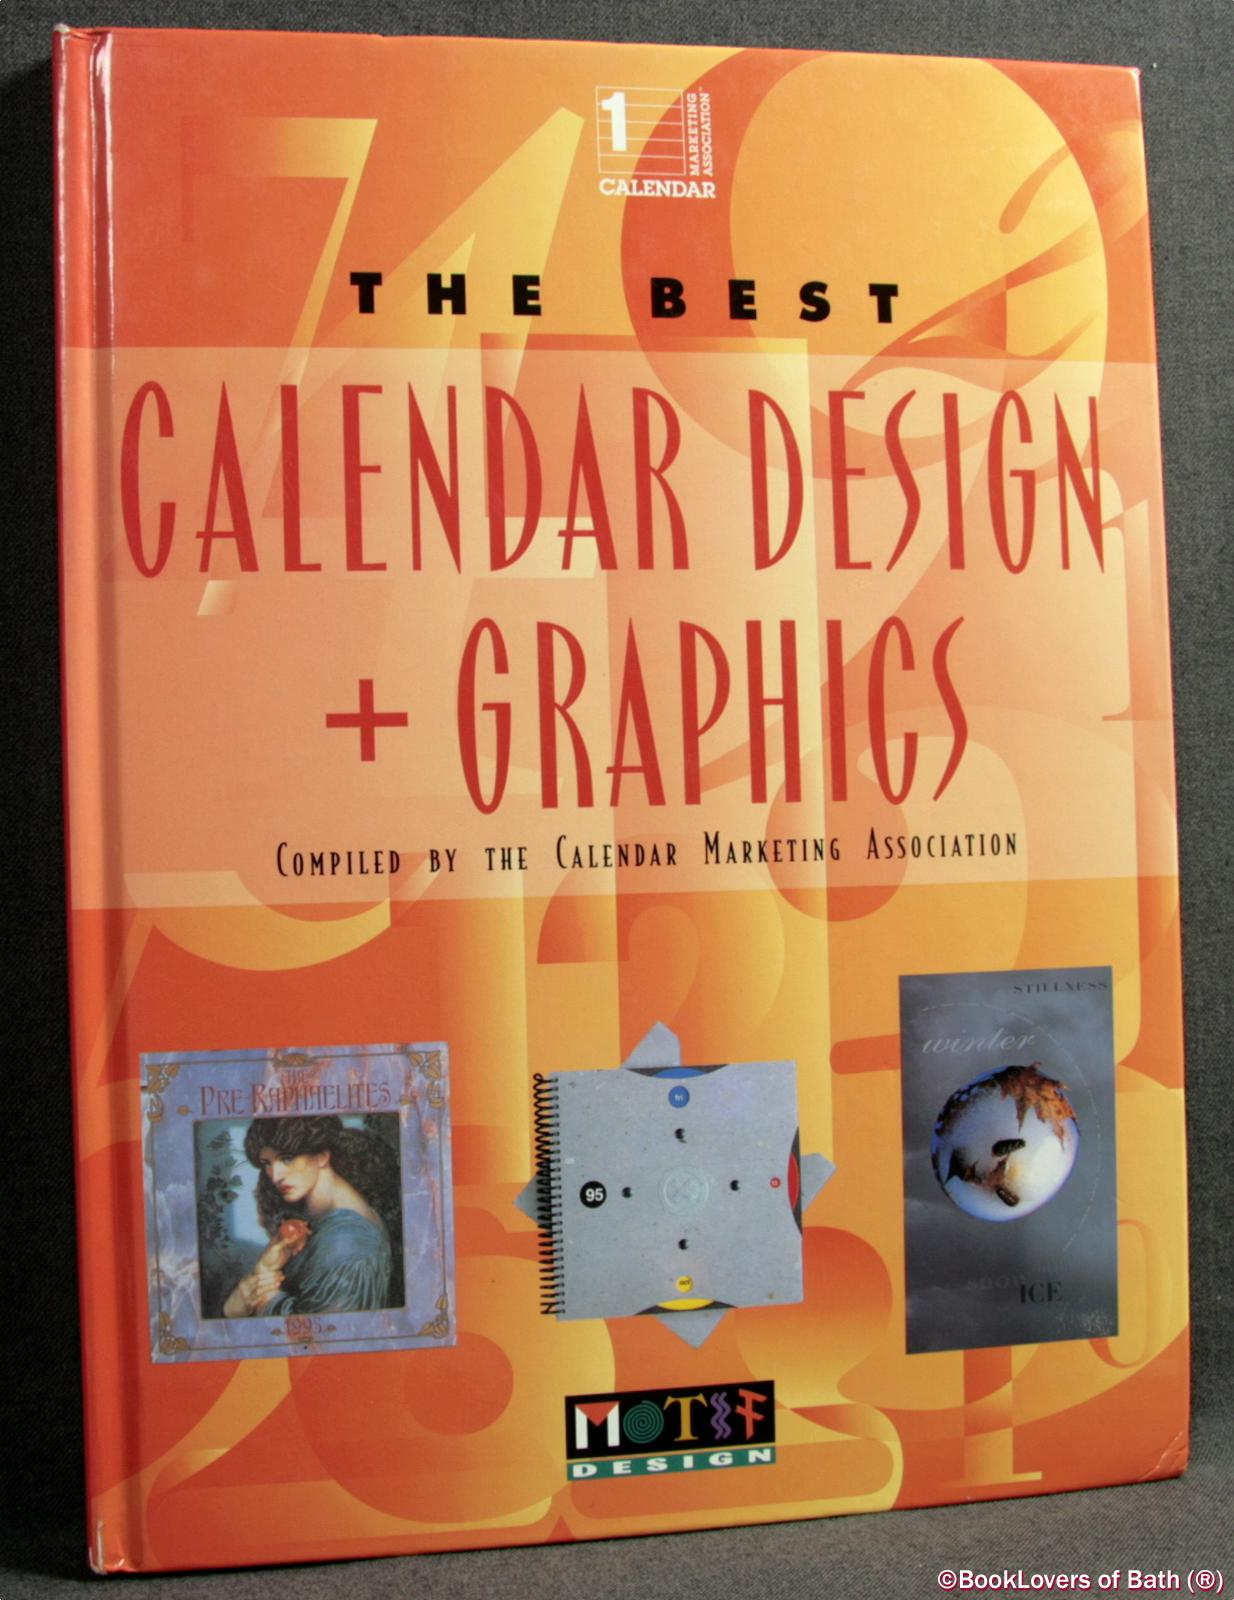 The Best Calendar Design + Graphics - Calendar Marketing Association